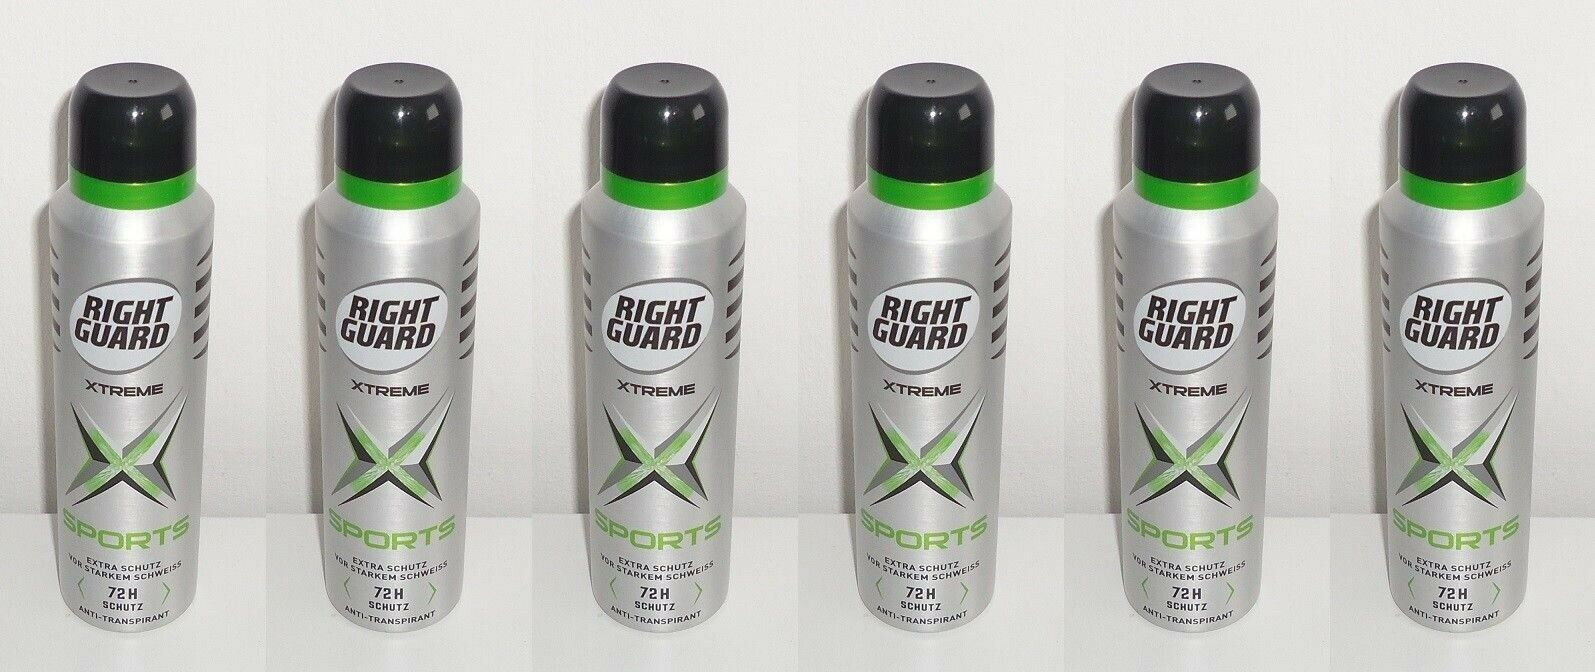 (1L=17,67€) 6x Right Guard Xtreme Sports Deo Spray , 6x150ml